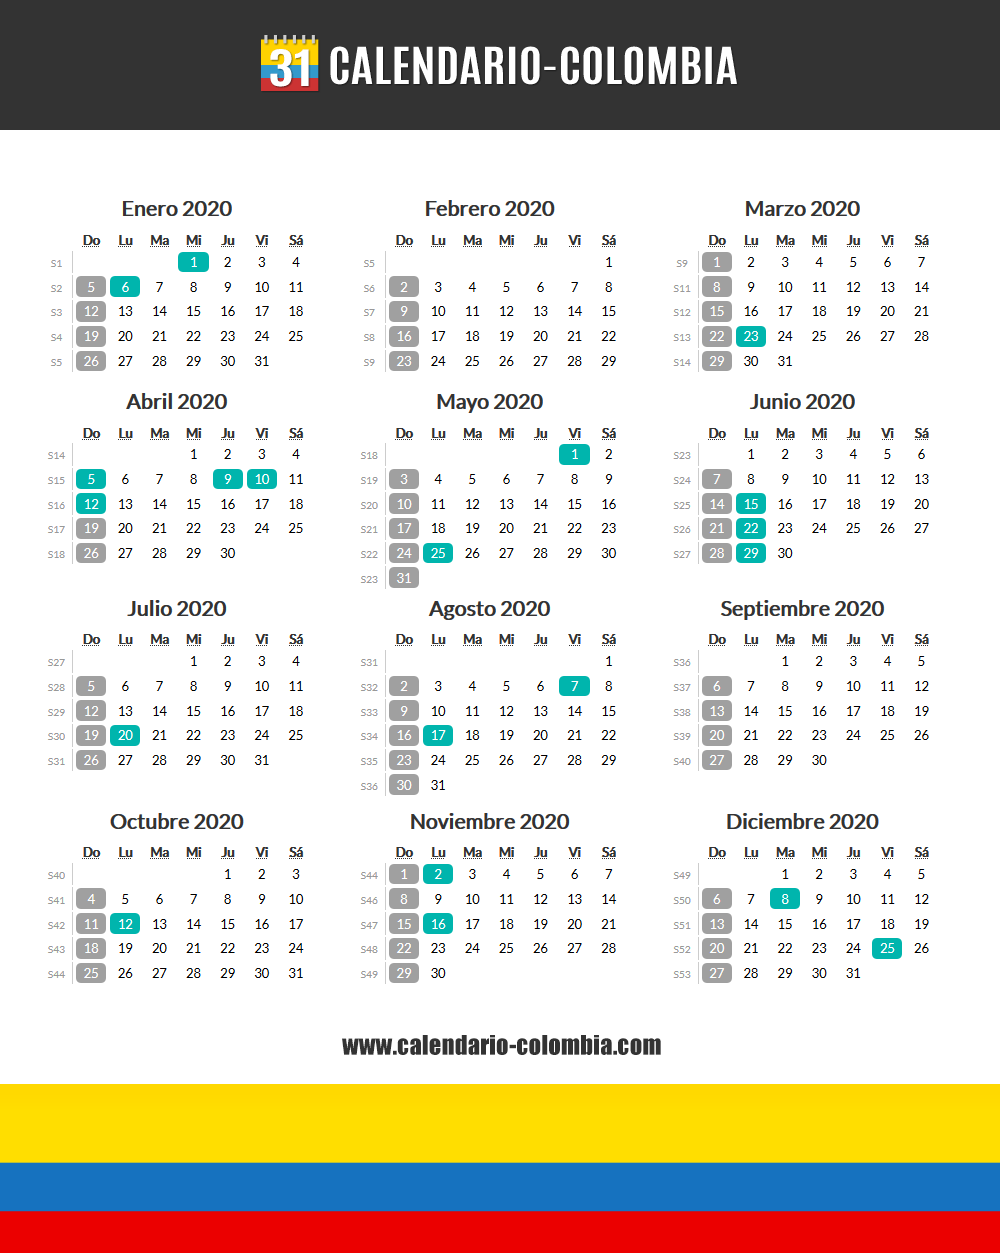 Marzo Calendario 2020.Calendario 2020 Colombia Calendario 2019 Colombia